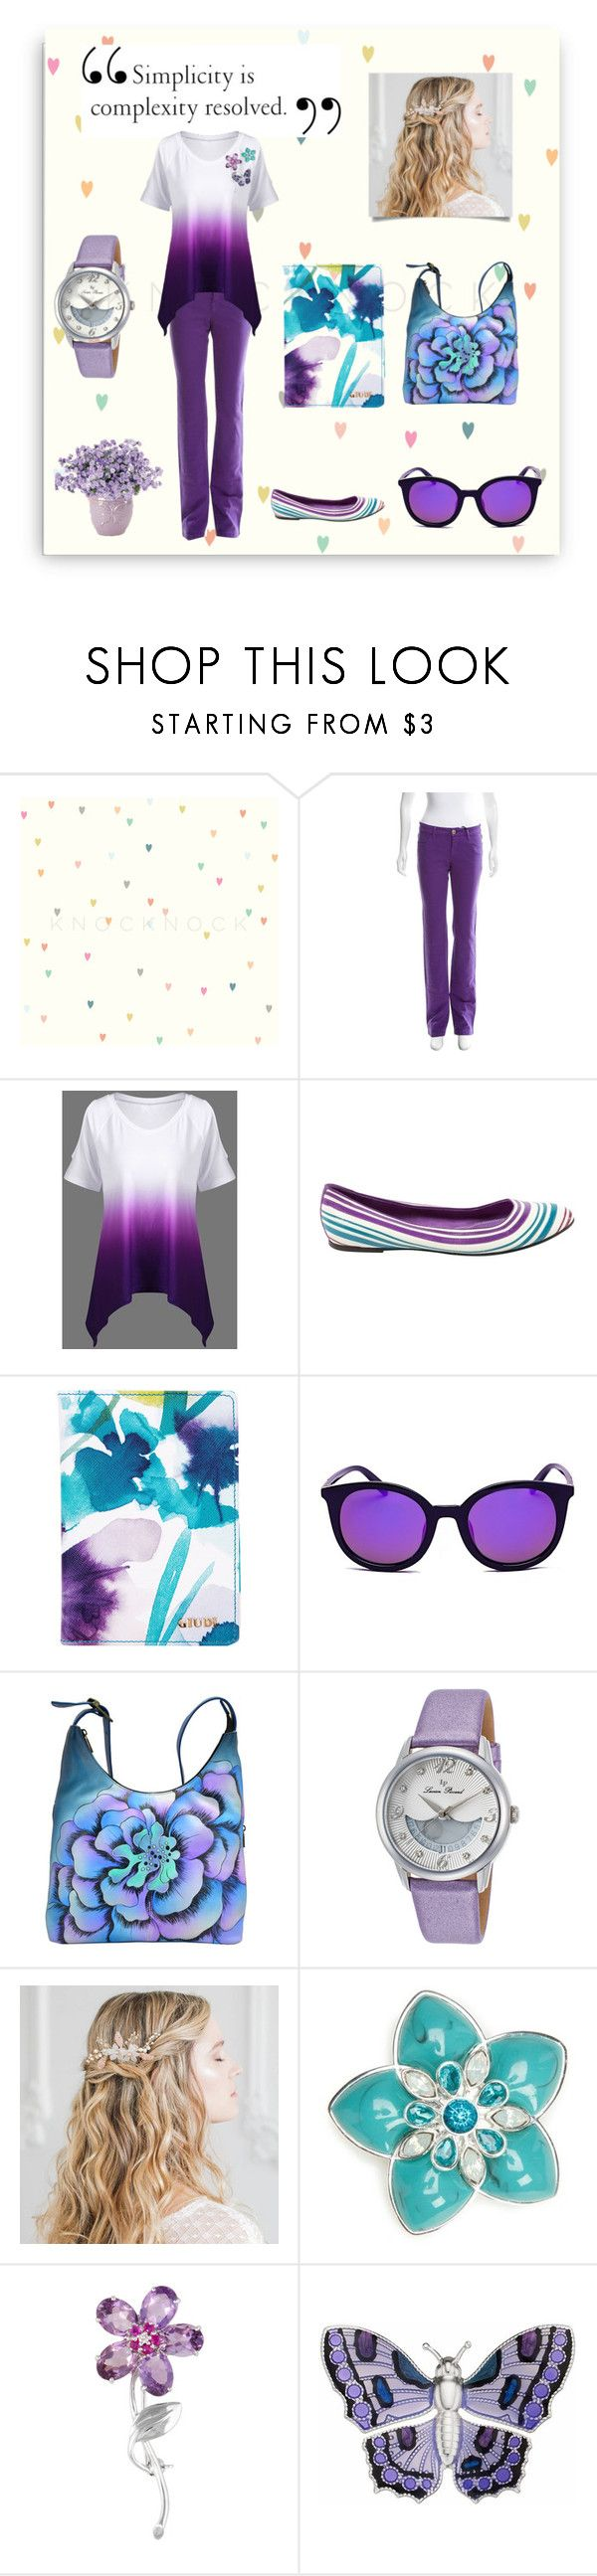 """""""Casual: Tuesday in the Park"""" by laine-feen ❤ liked on Polyvore featuring Versace, Louis Vuitton, Anuschka, Lucien Piccard and Napier"""